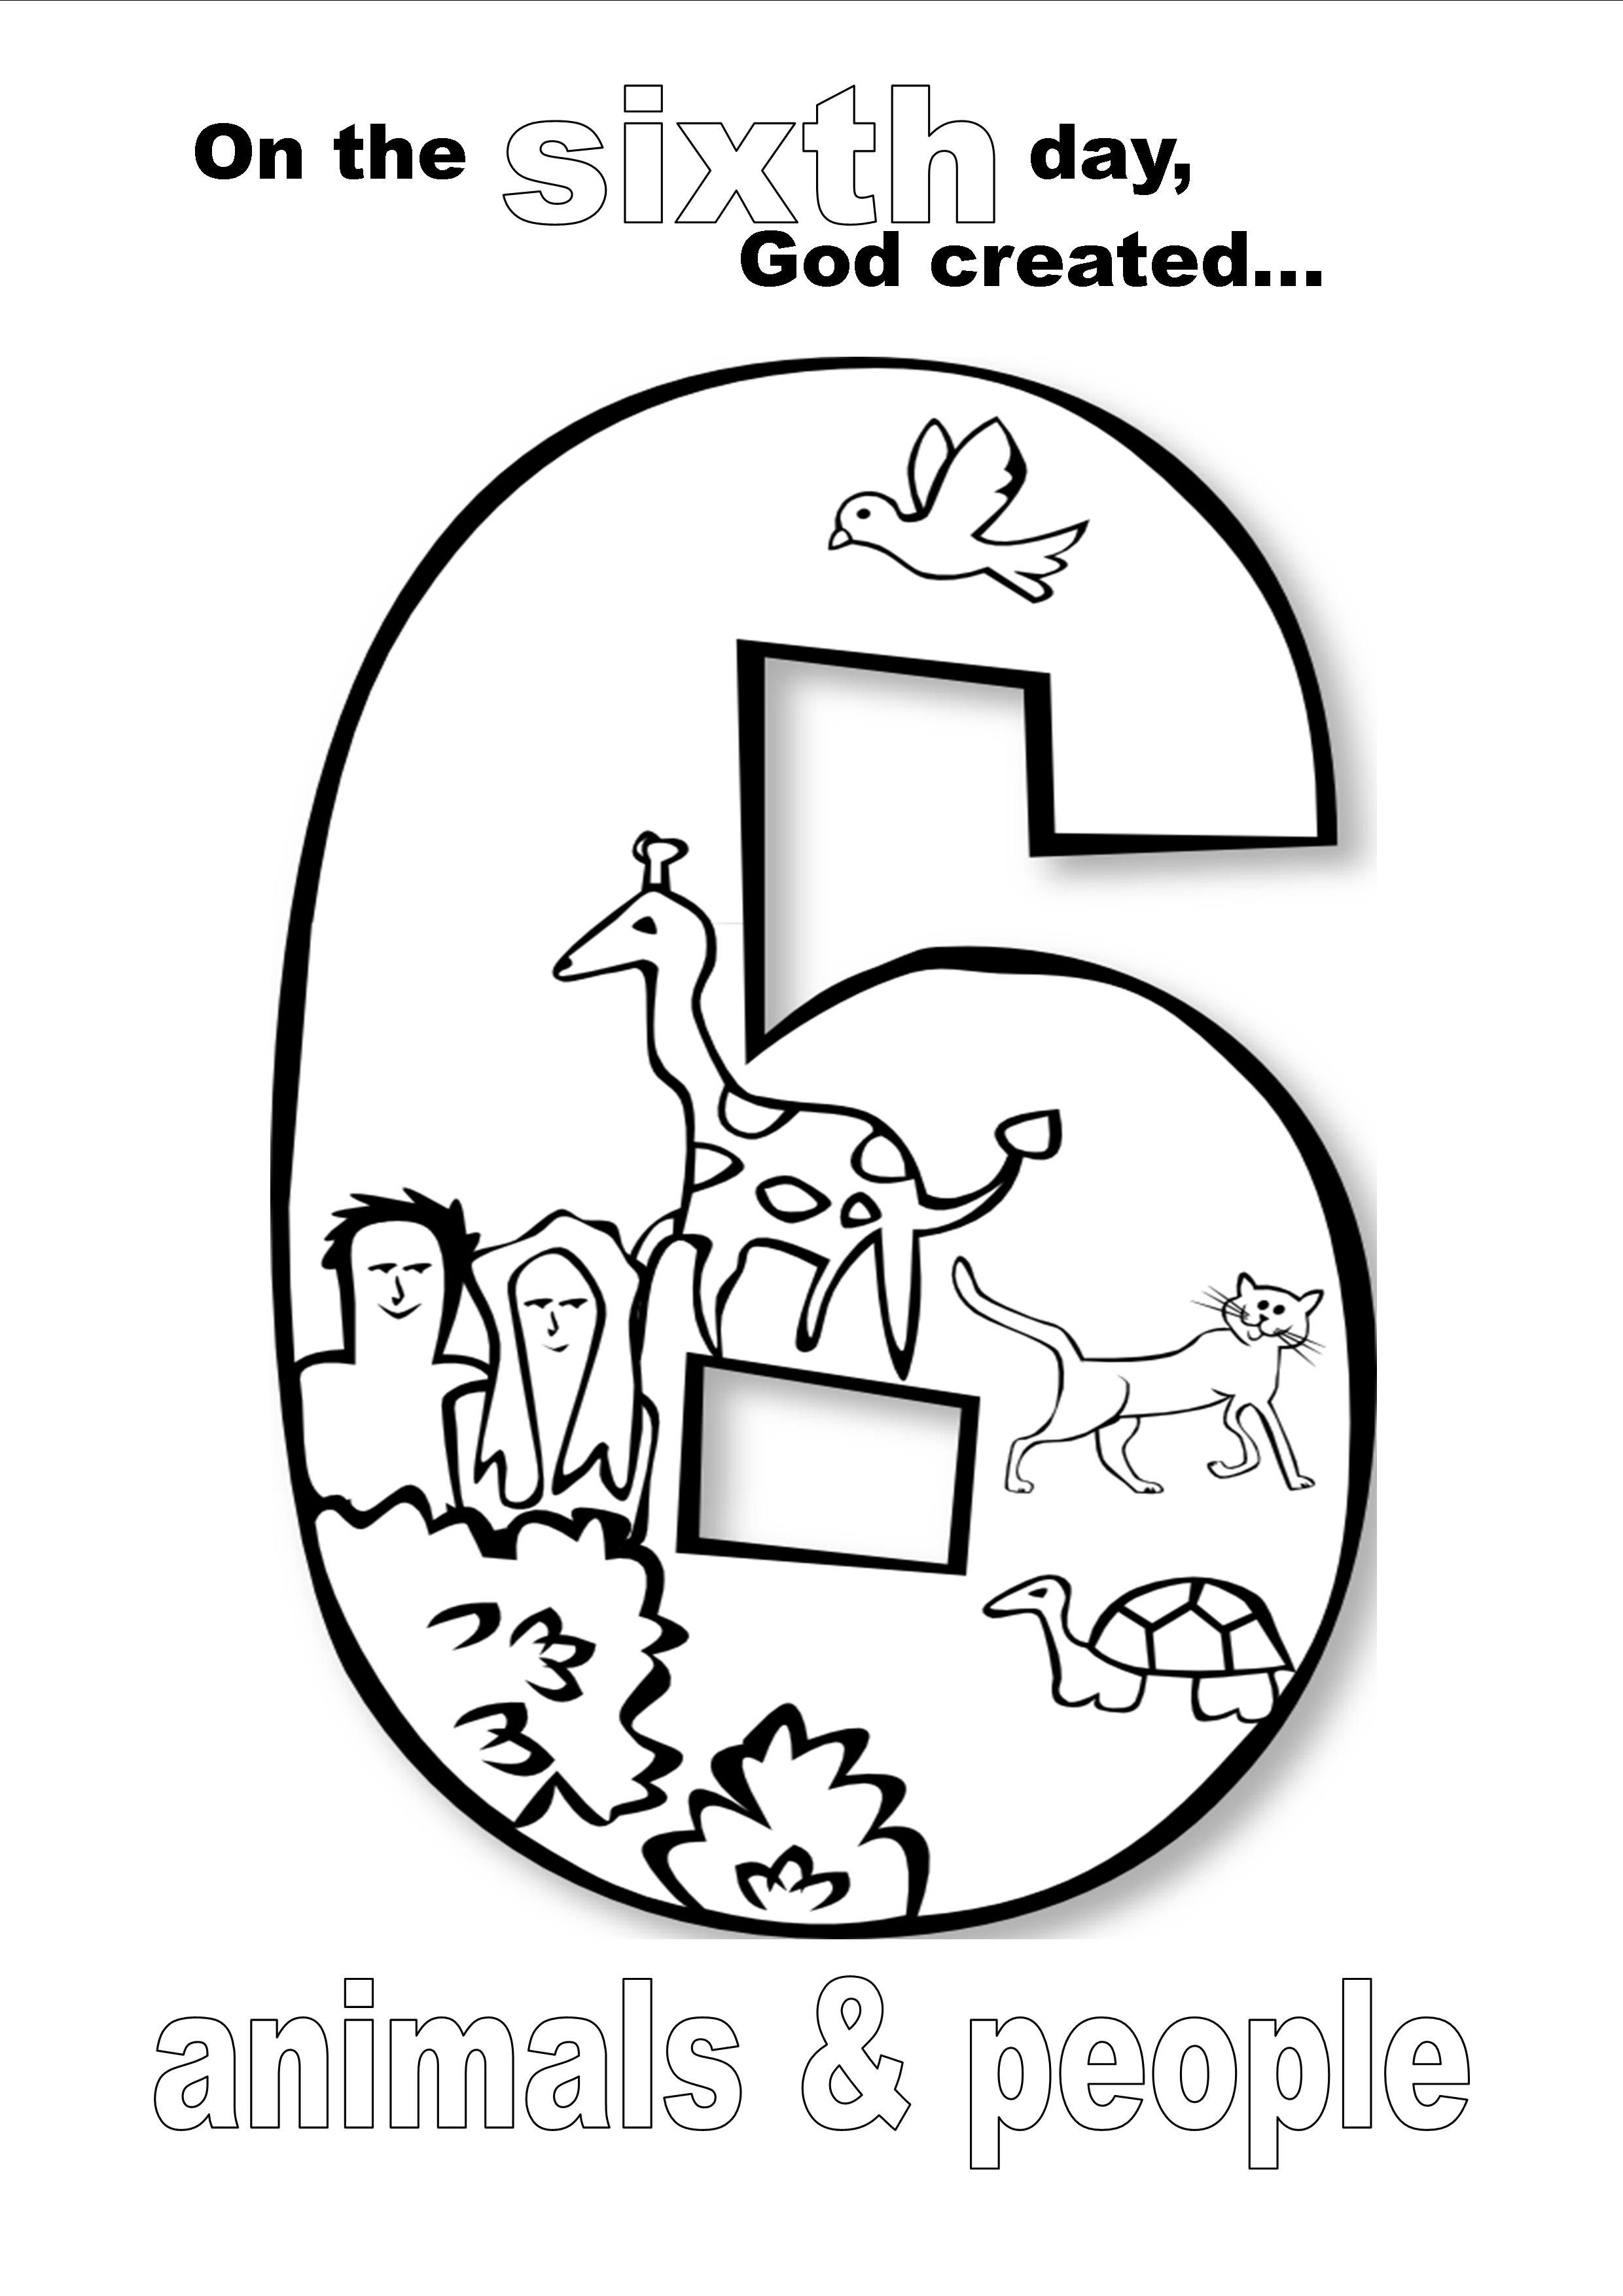 coloring sheet 6 days of creation drawing day 6 god created man in his own image the biblical days creation coloring 6 sheet drawing of